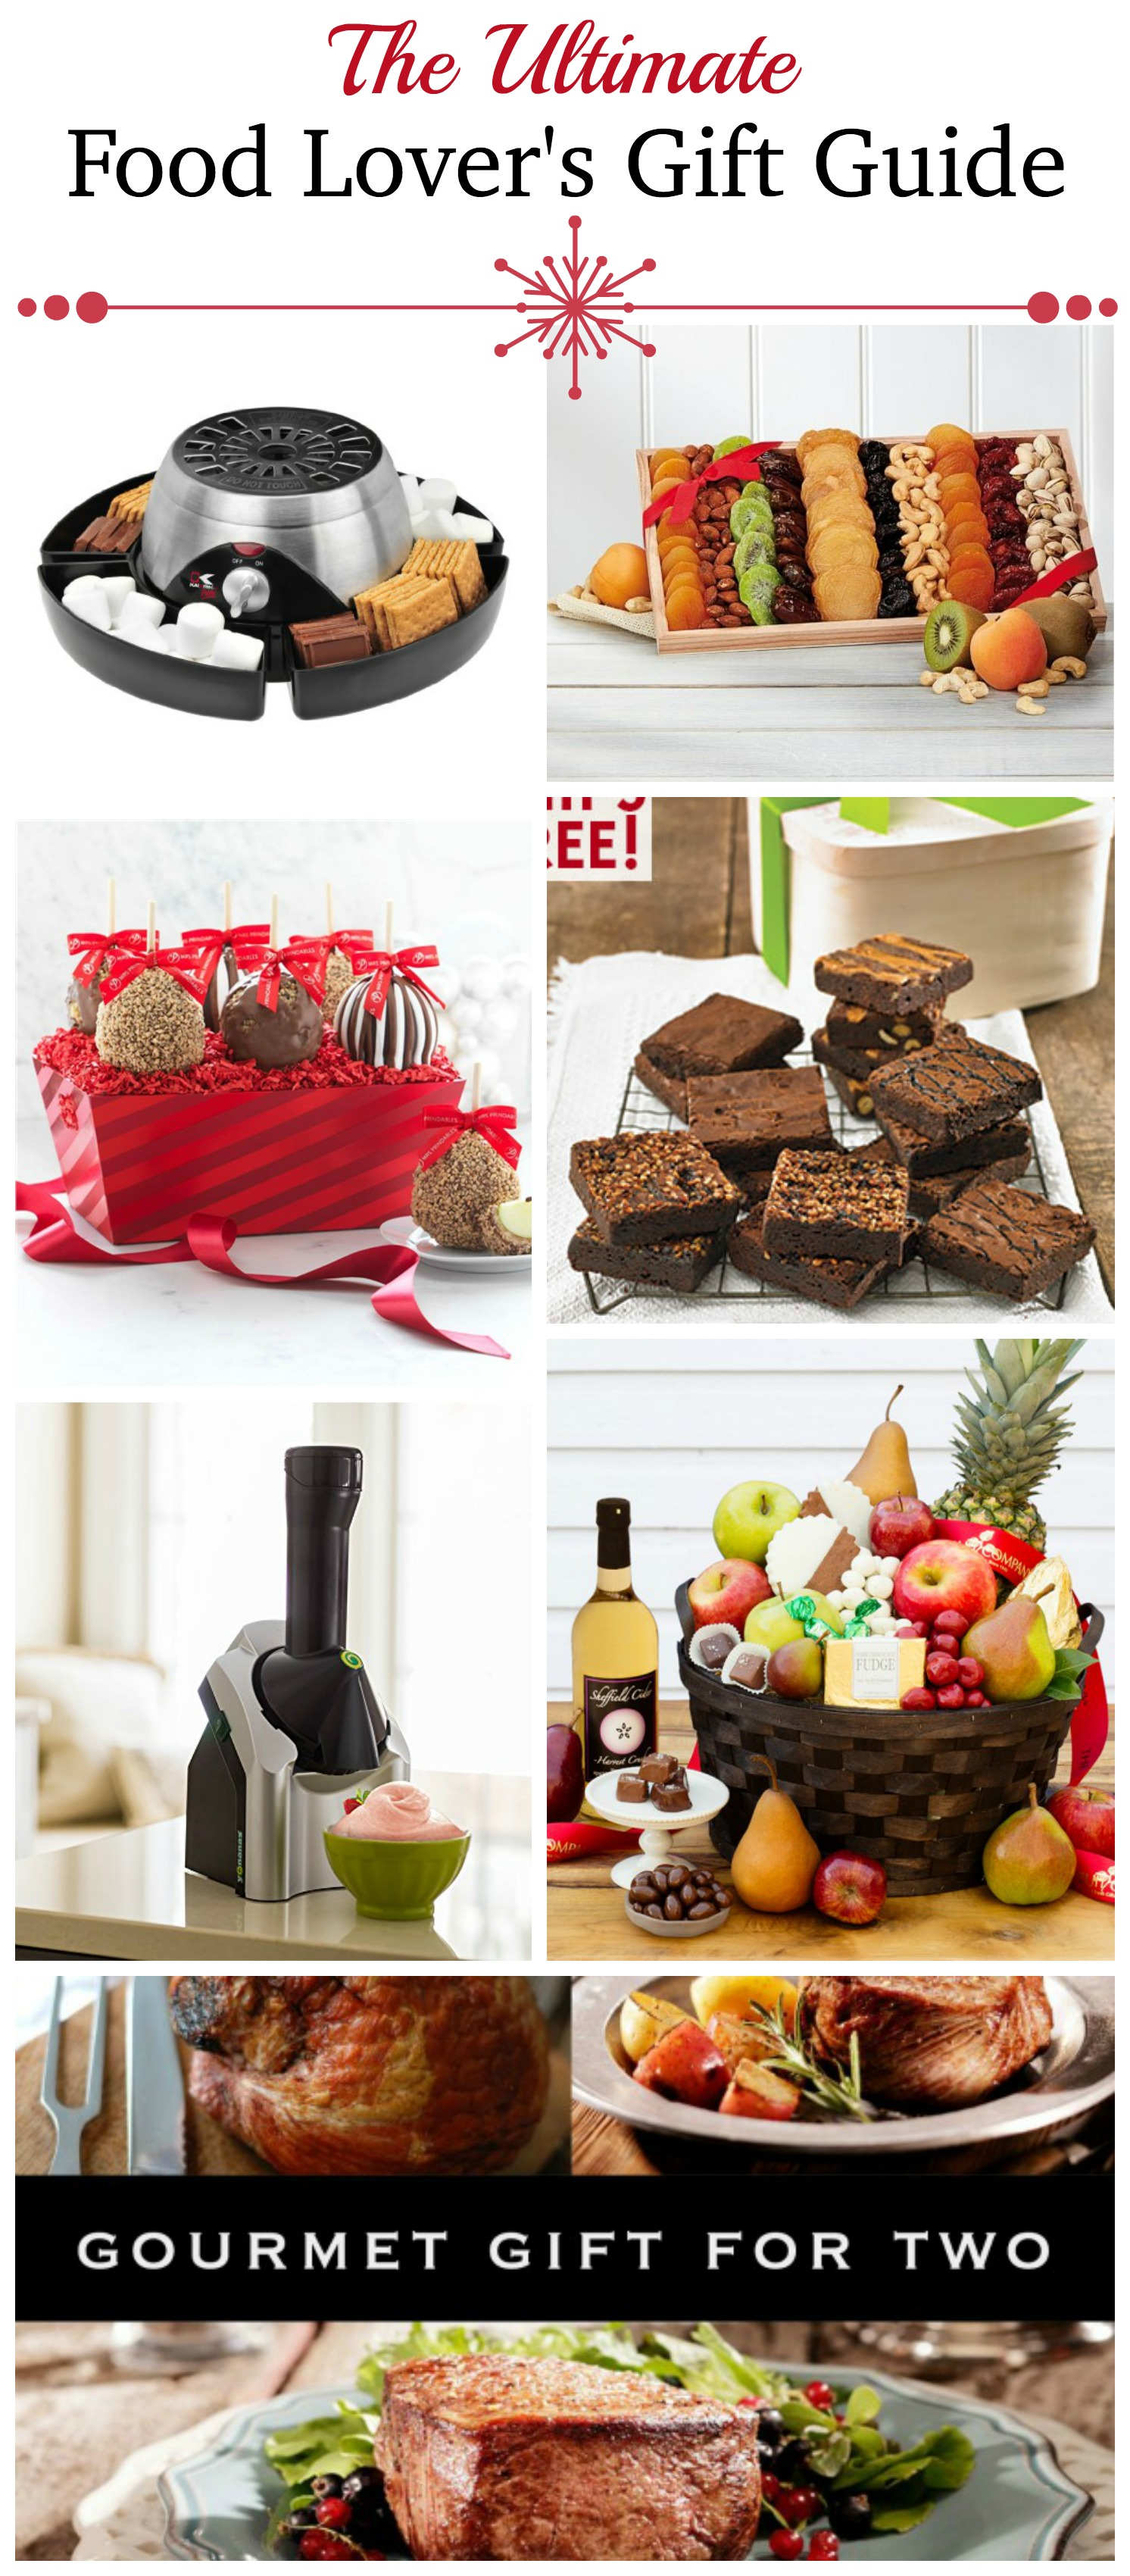 Great Gift Ideas for that Foodie or fun Food Lover on your gift list! Foodies and Food Lovers Gift Guide!